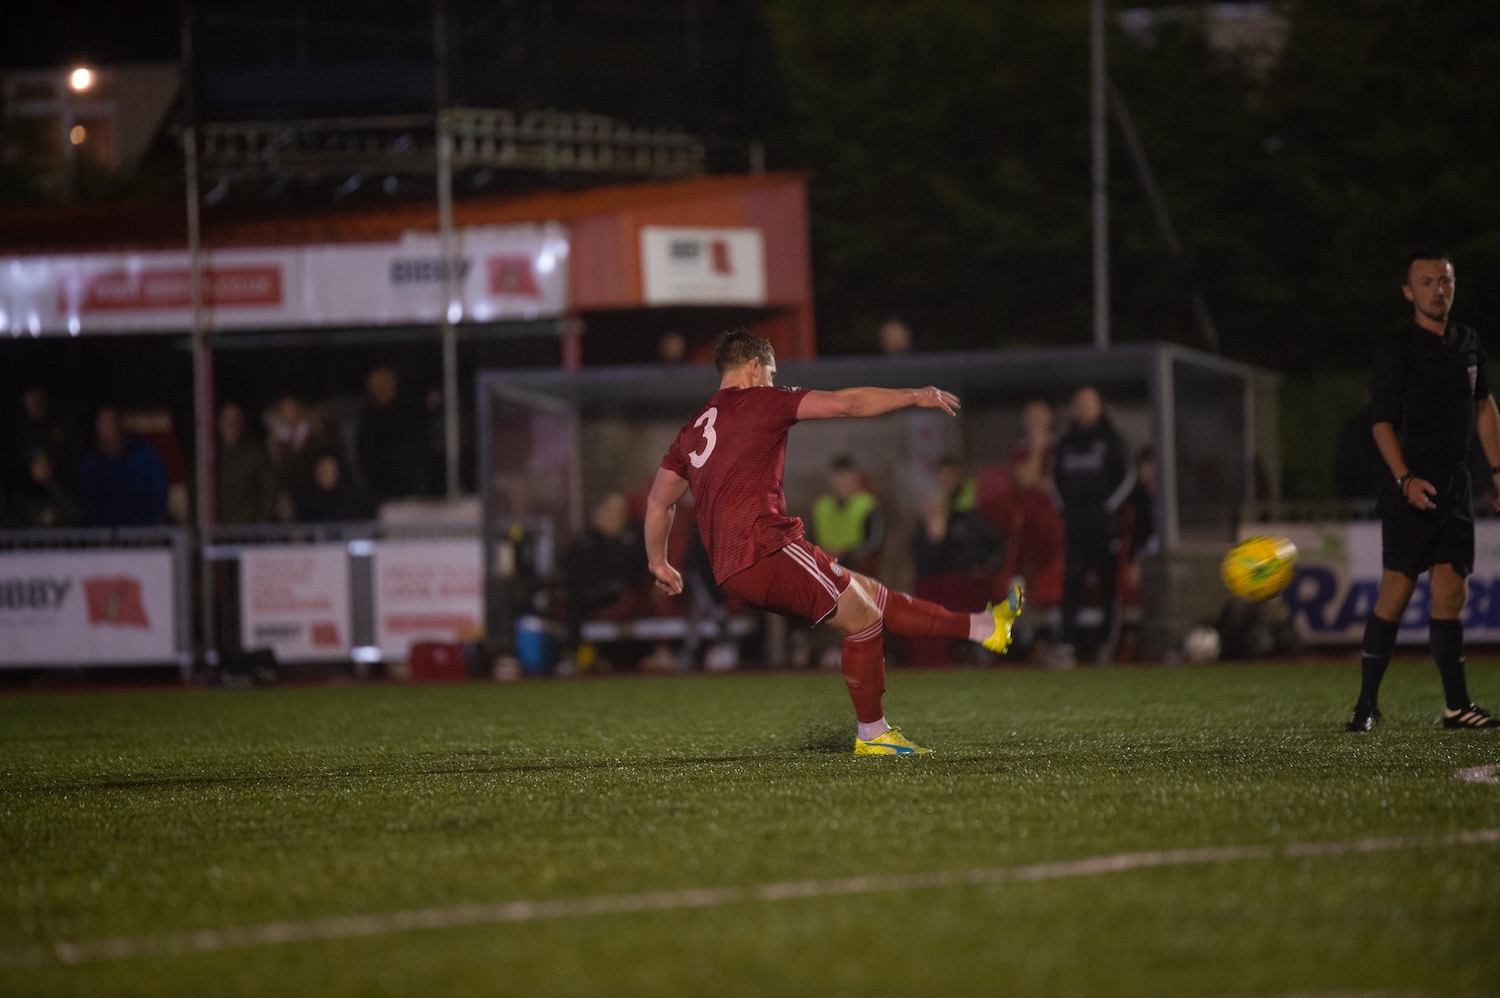 Read the full article - HIGHLIGHTS: Worthing 1-2 Bishop's Stortford [H] – League